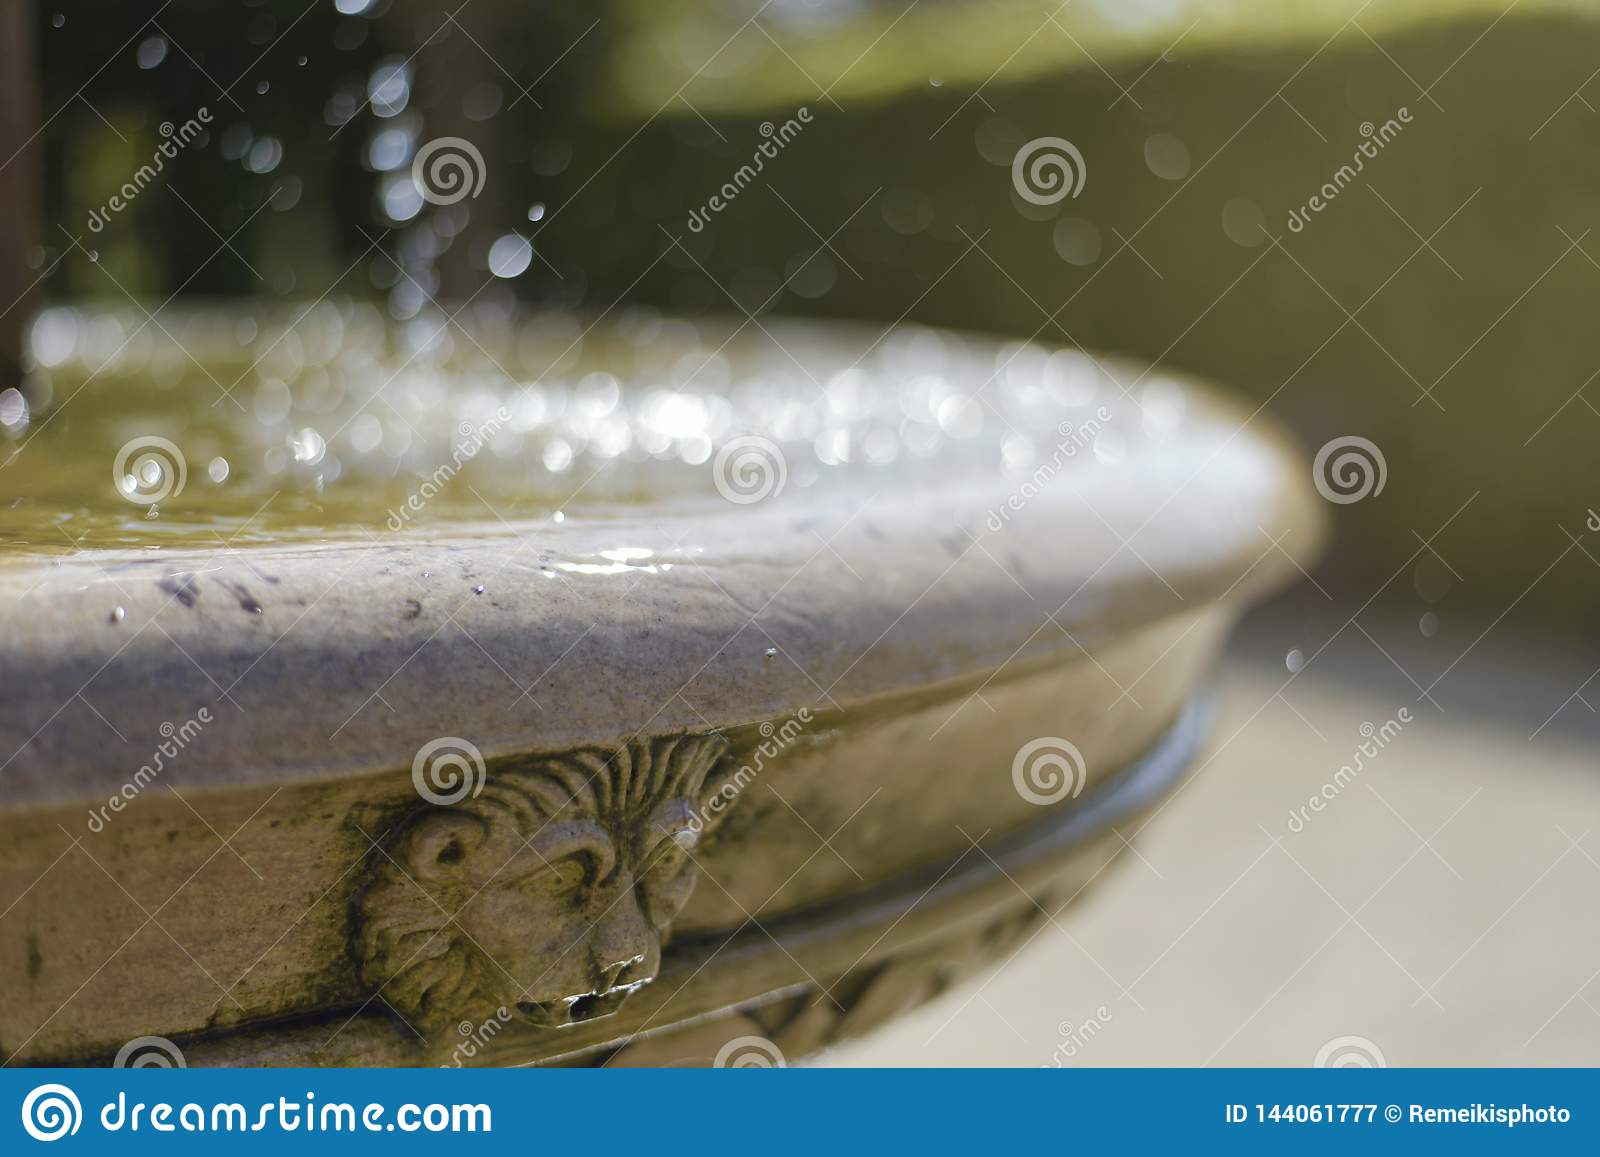 Old fountain with the lion head. Hot summer day. Water splashing